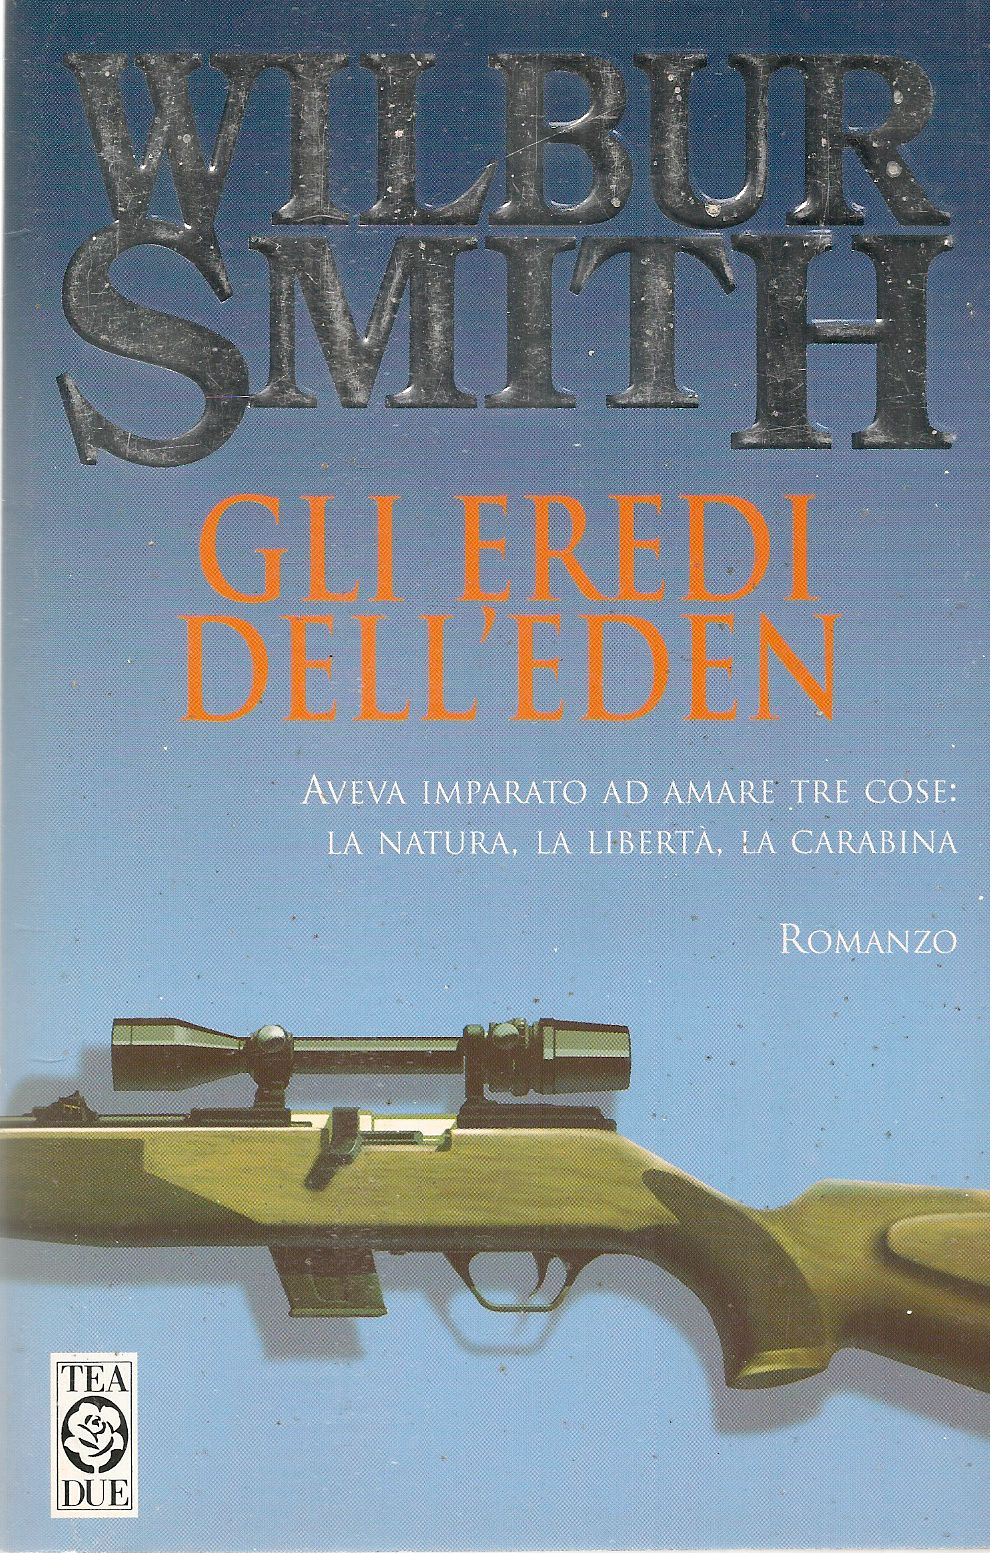 GLI EREDI DELL'EDEN - WILBUR SMITH - TEA DUE 2000